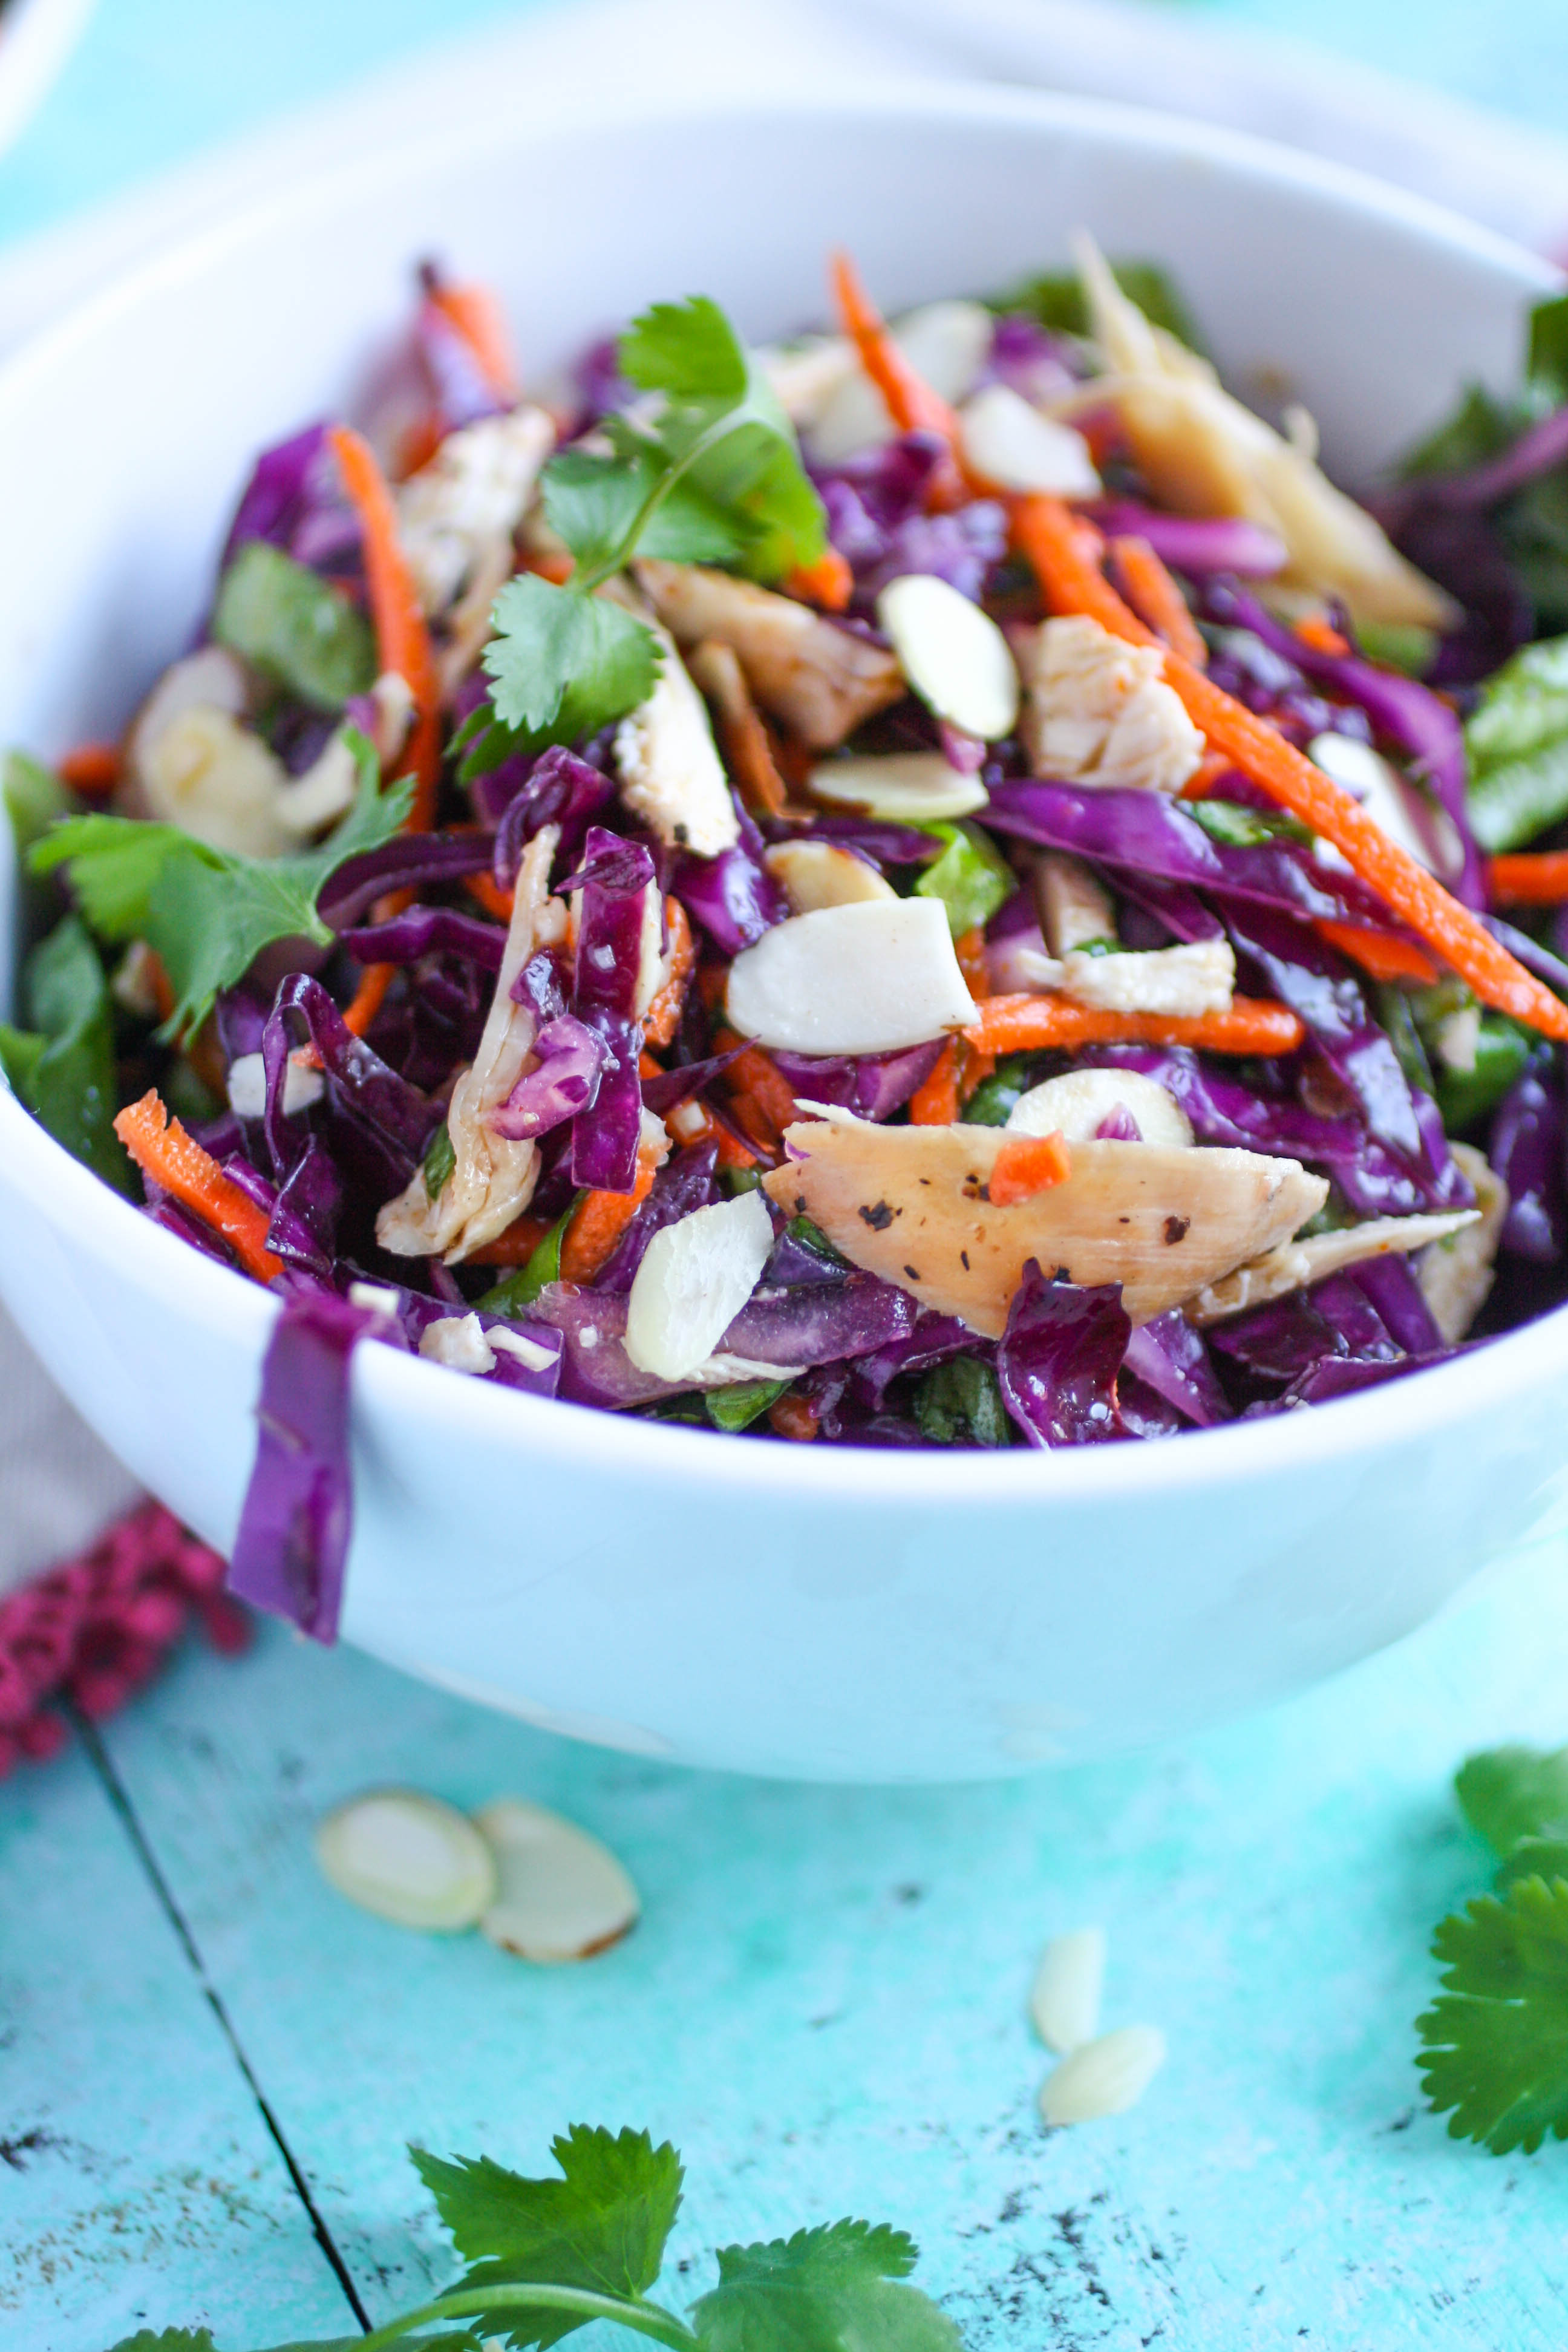 Crunchy Cabbage & Chicken Salad with Sesame Dressing is a great salad if you like crunch and color and flavor! This cabbage salad includes chicken to make it satisfying!